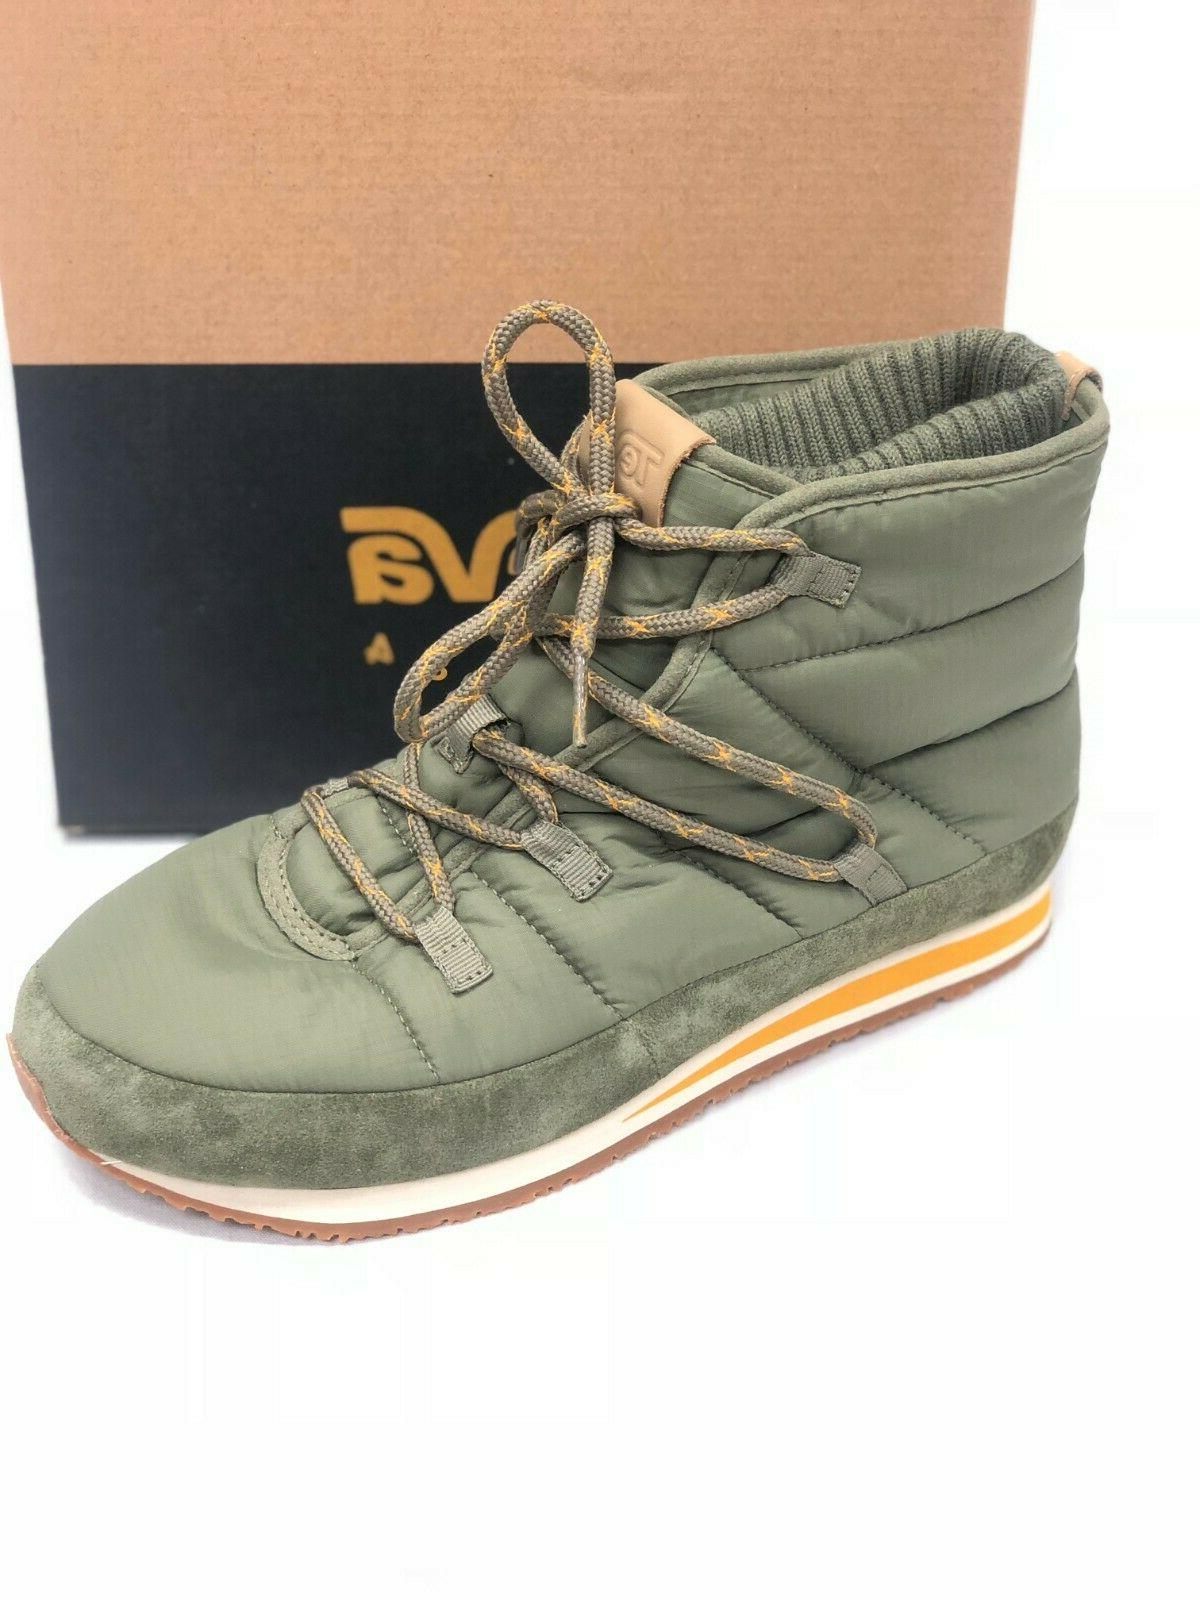 Teva Men's Ember Lace Boots Burnt Olive 1094235 Green Shoes